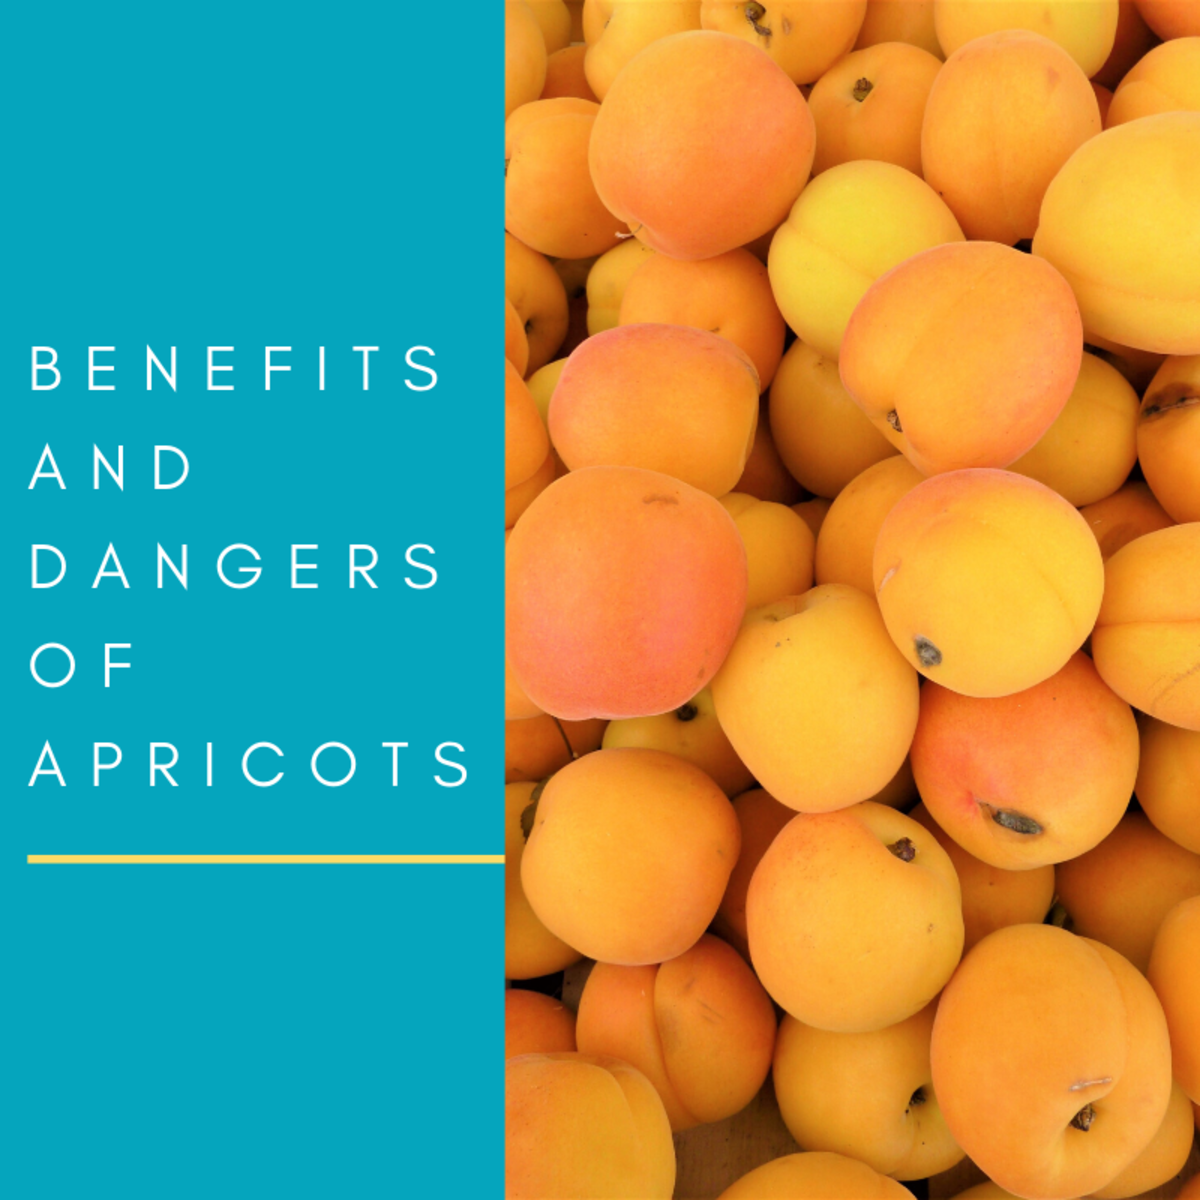 Are apricots good for you? Read on to learn about the potential dangers and benefits of this fruit.